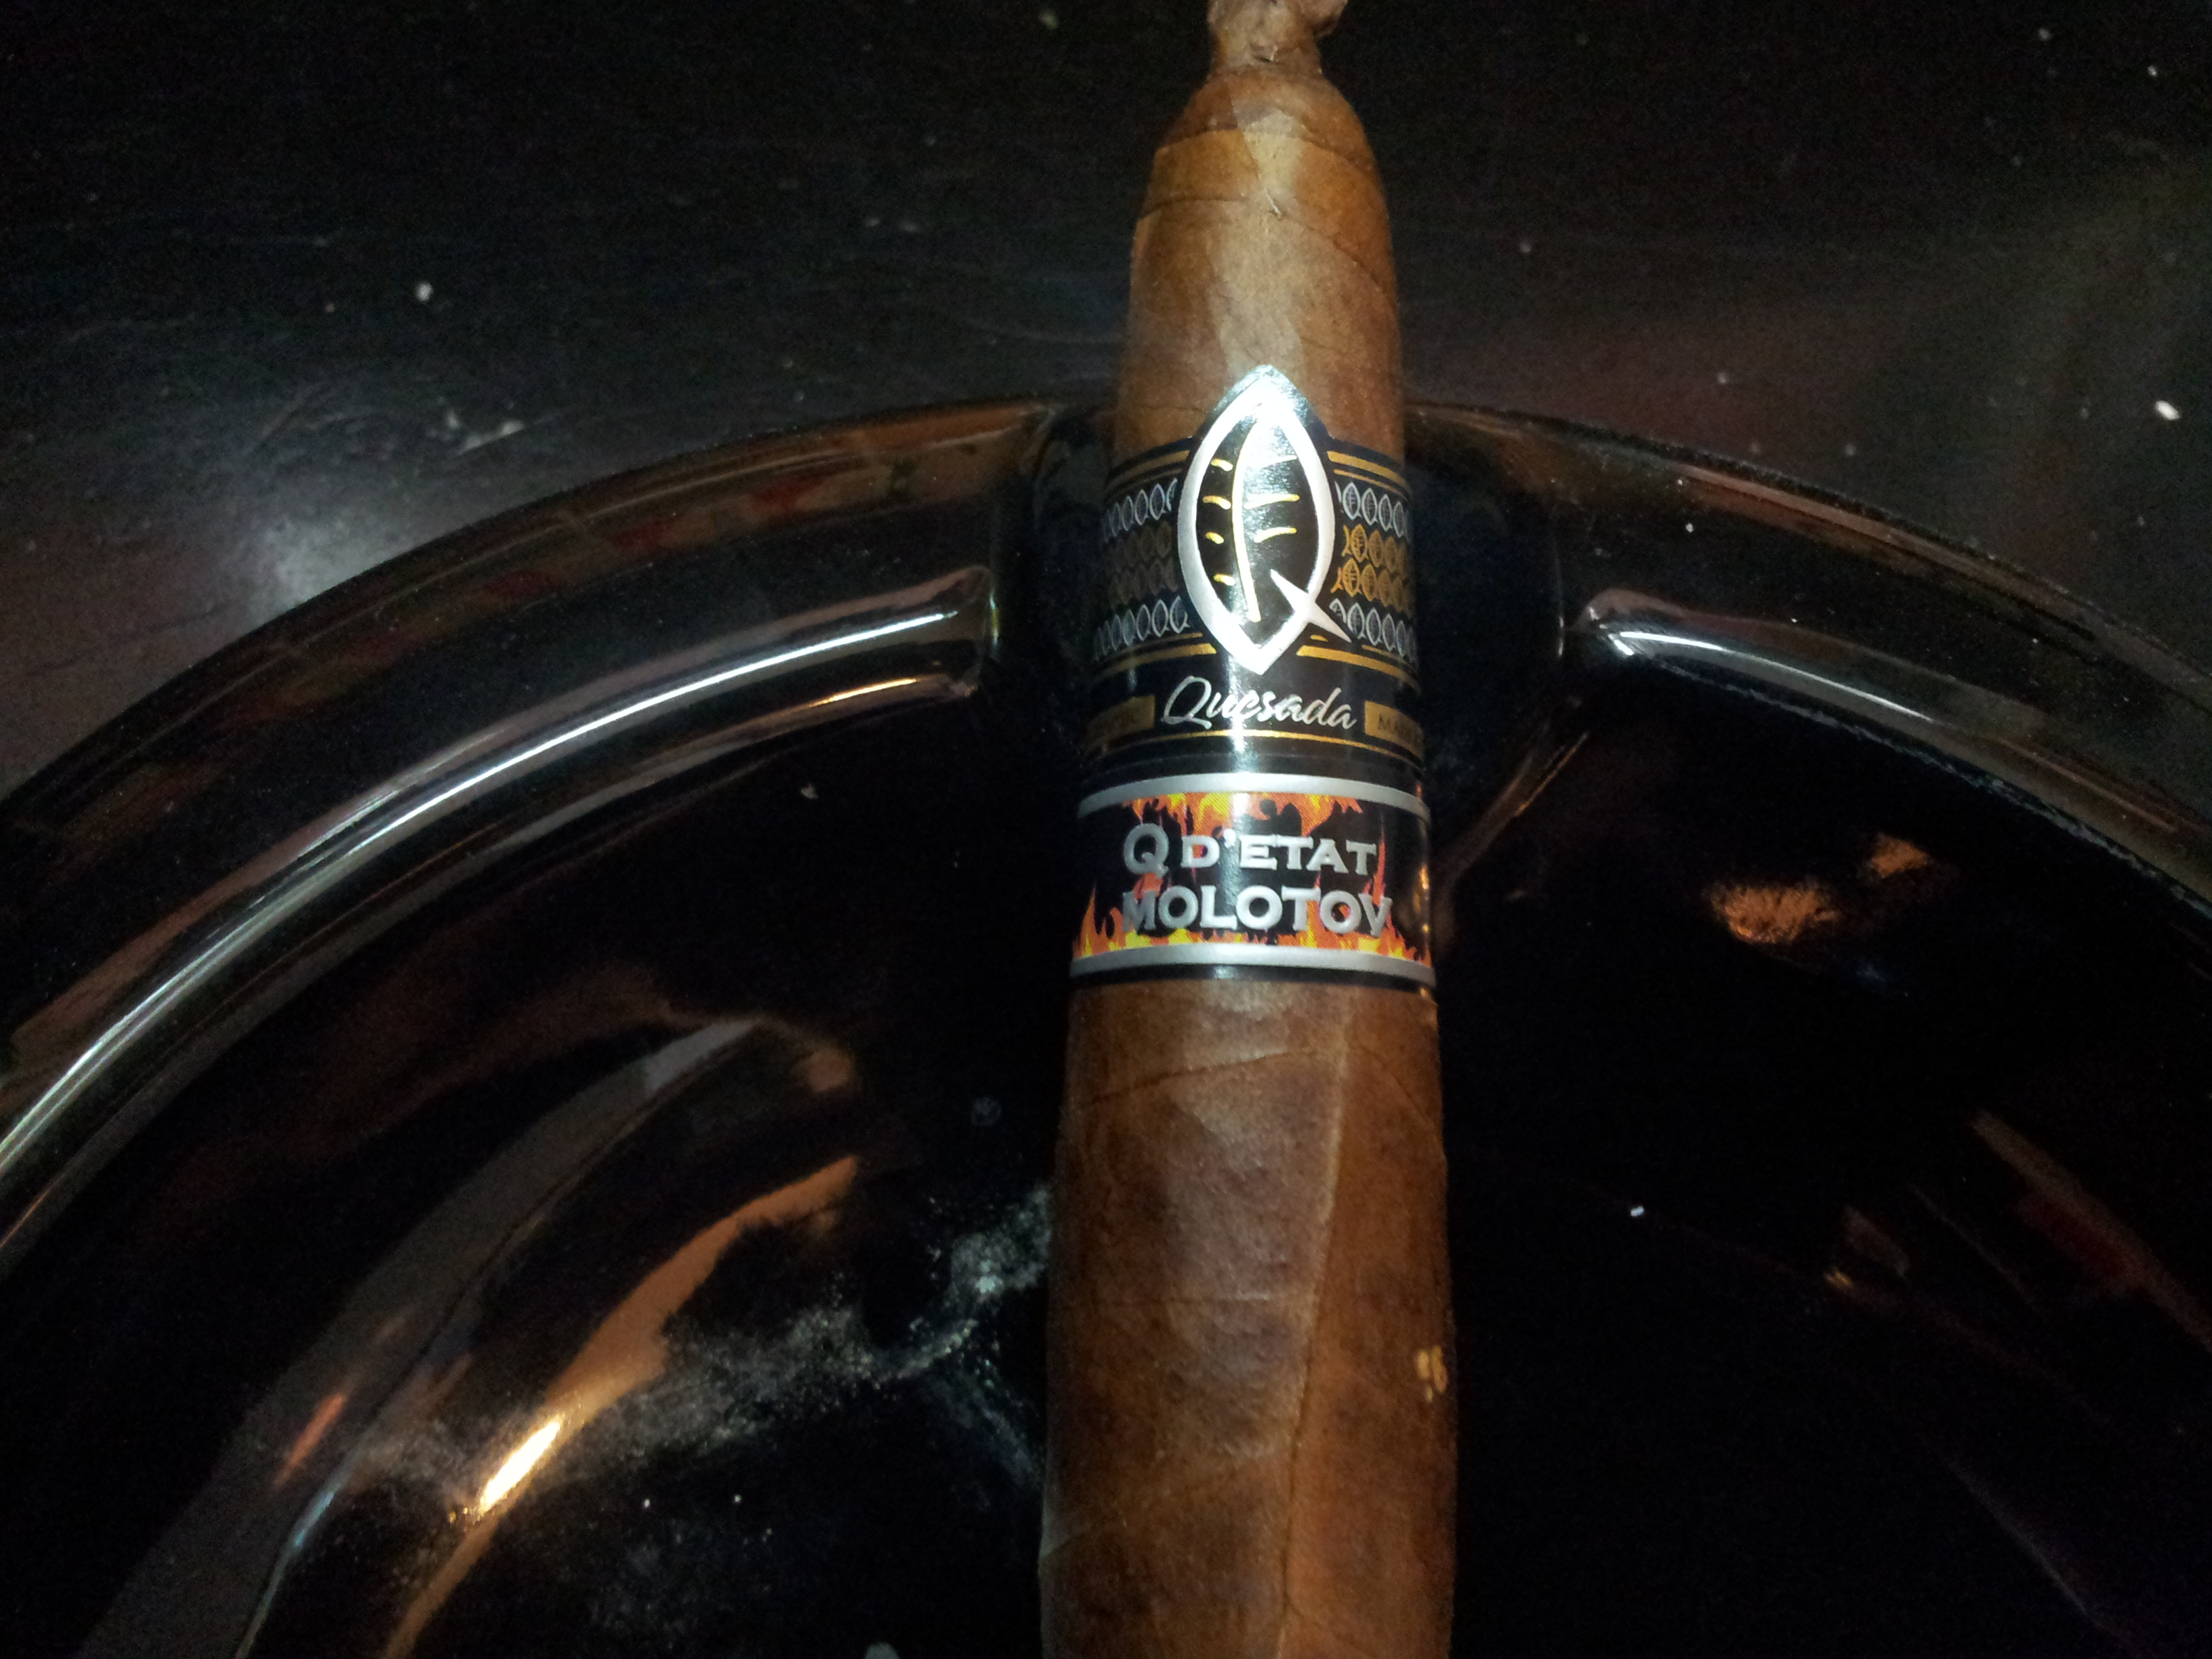 Quesada Q d'etat Molotov – Cigar Review